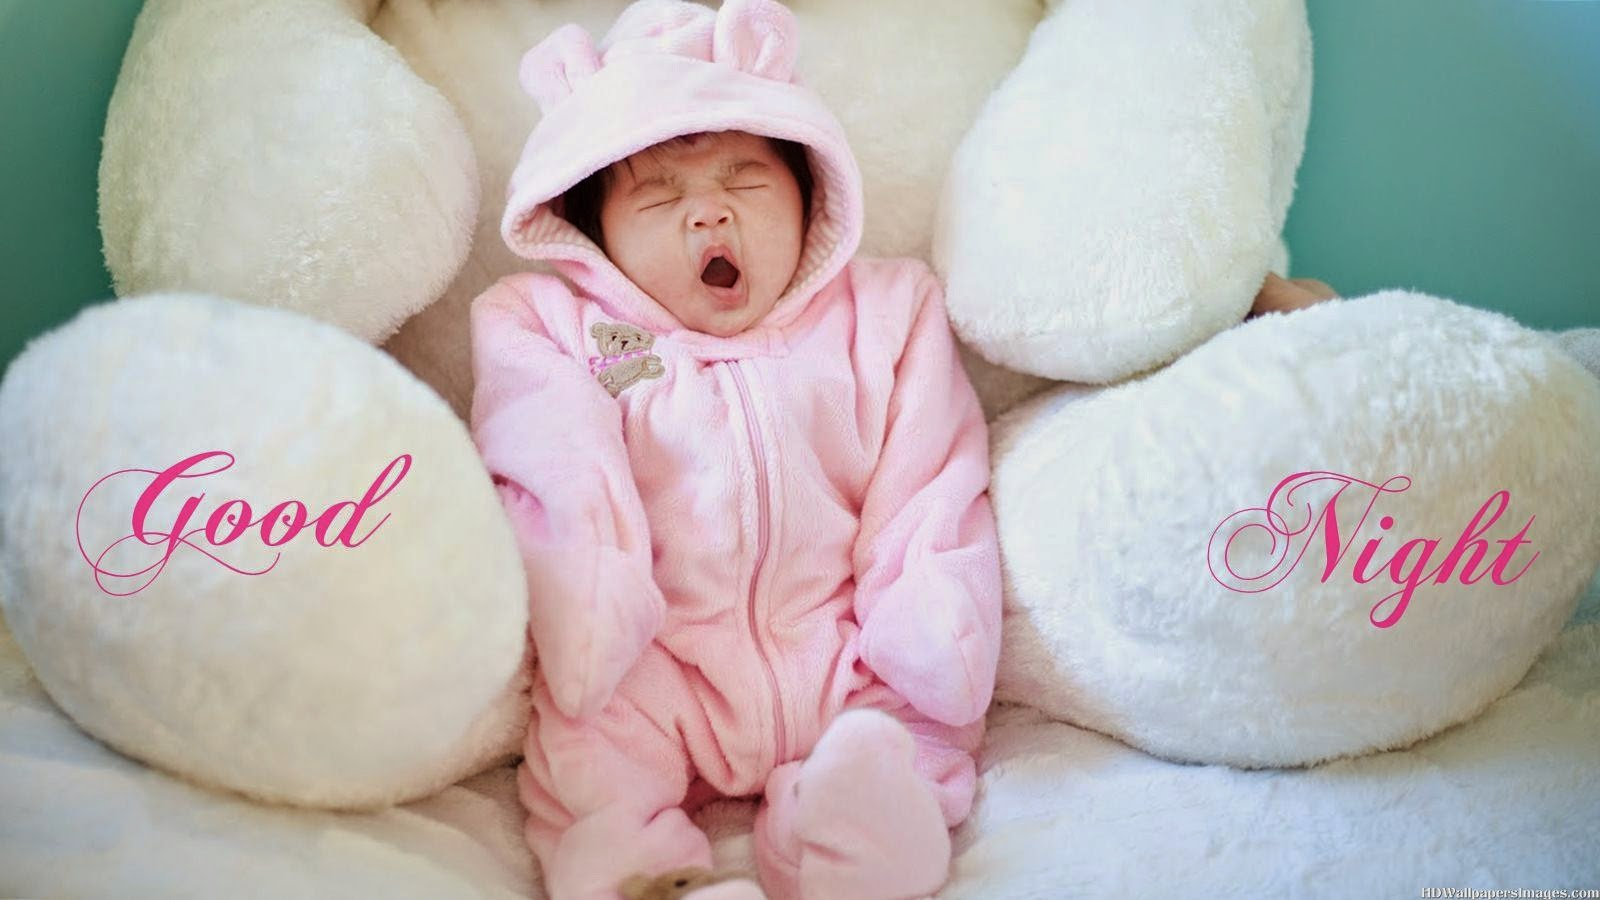 download cute yawing baby goodnight wallpapers - good night